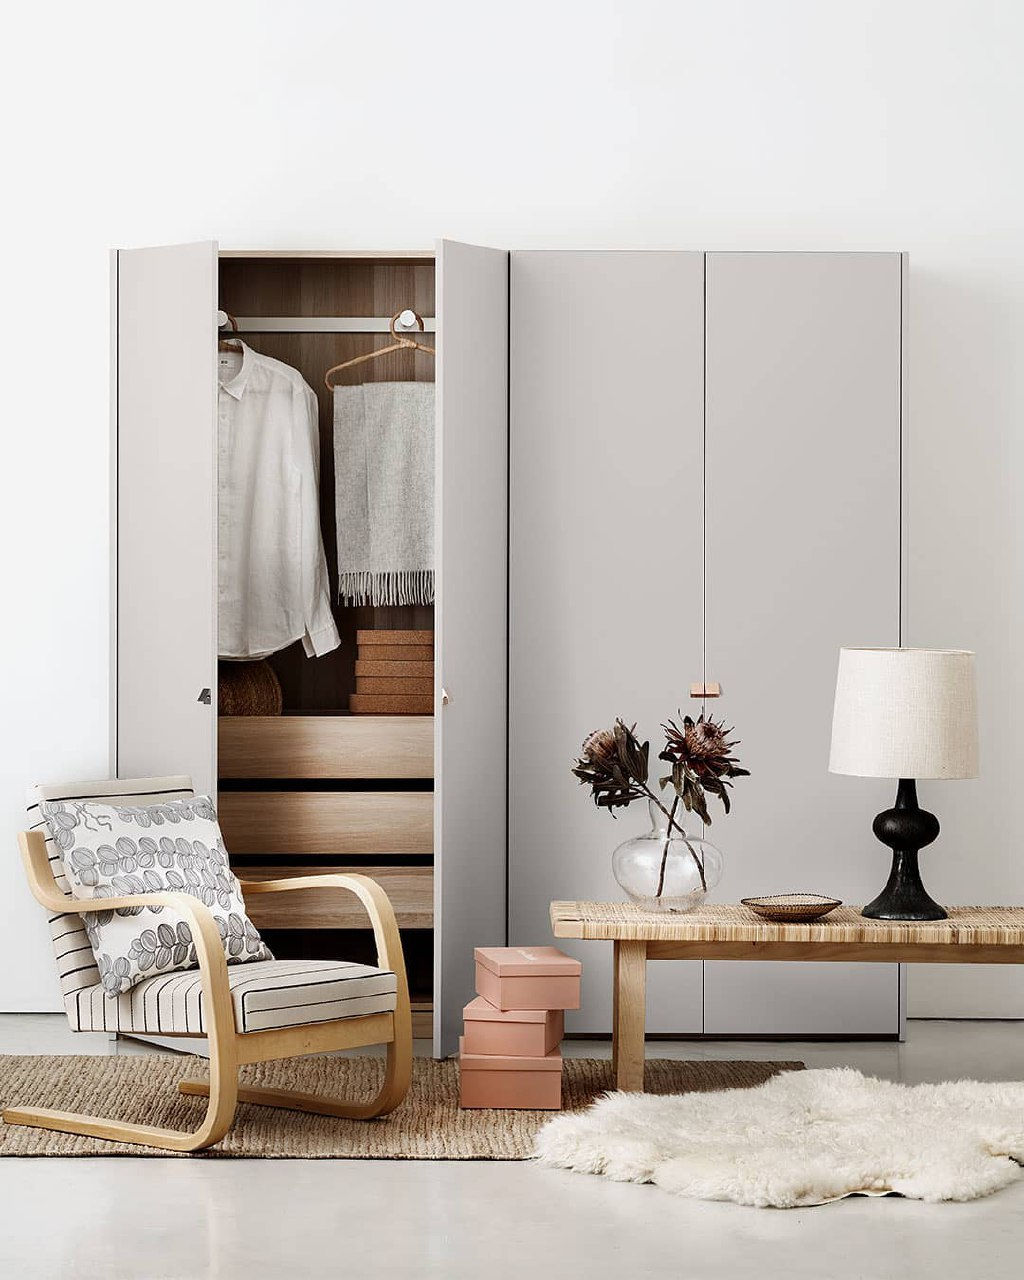 Standalone wardrobes are often affordable BTO household items that don't require you to decide on renovation